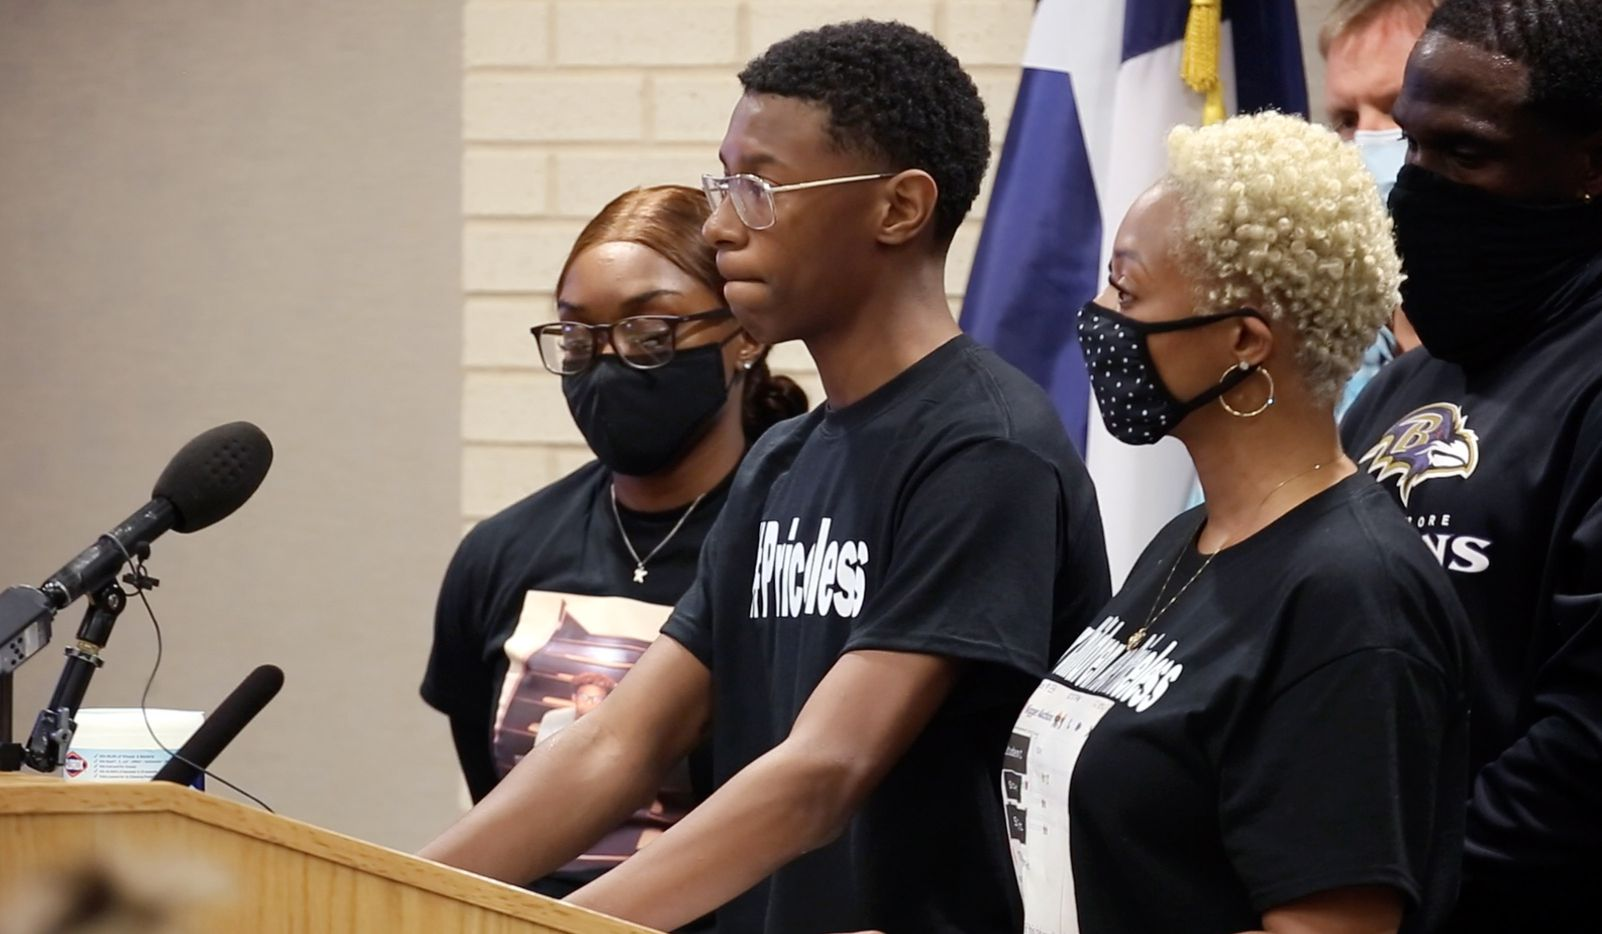 """Ninth-grader Christopher Johnson, who was targeted in a racial Snapchat group with multiple names, including """"Slave Trade"""" and another that included a racial slur, speaks to Aledo ISD board members, president and superintendent about his experience, Monday evening, April 19, 2021. His mother Mioshi Johnson (right) stood by his side. Christopher and another African-American boy were the targets of a social media post last week. (Tom Fox/The Dallas Morning News)"""